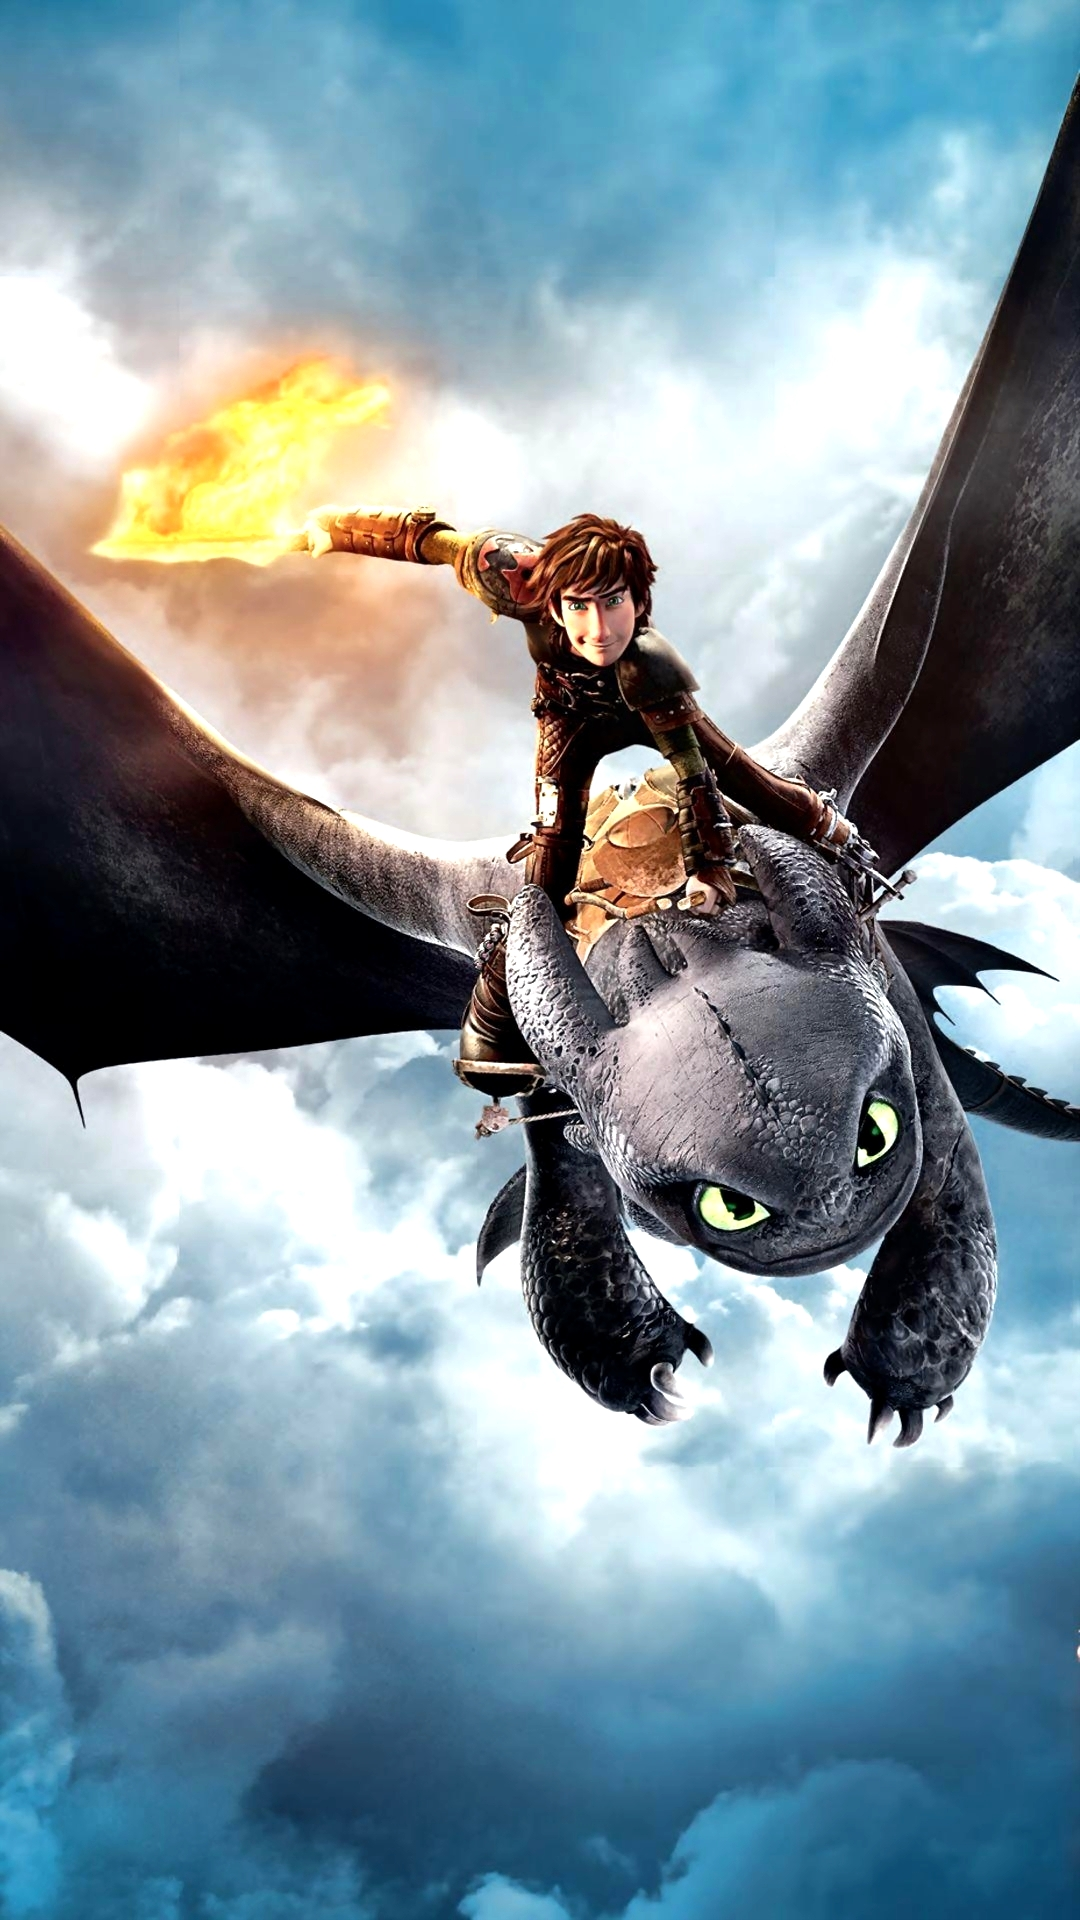 Wallpaper Train Your Dragon Android